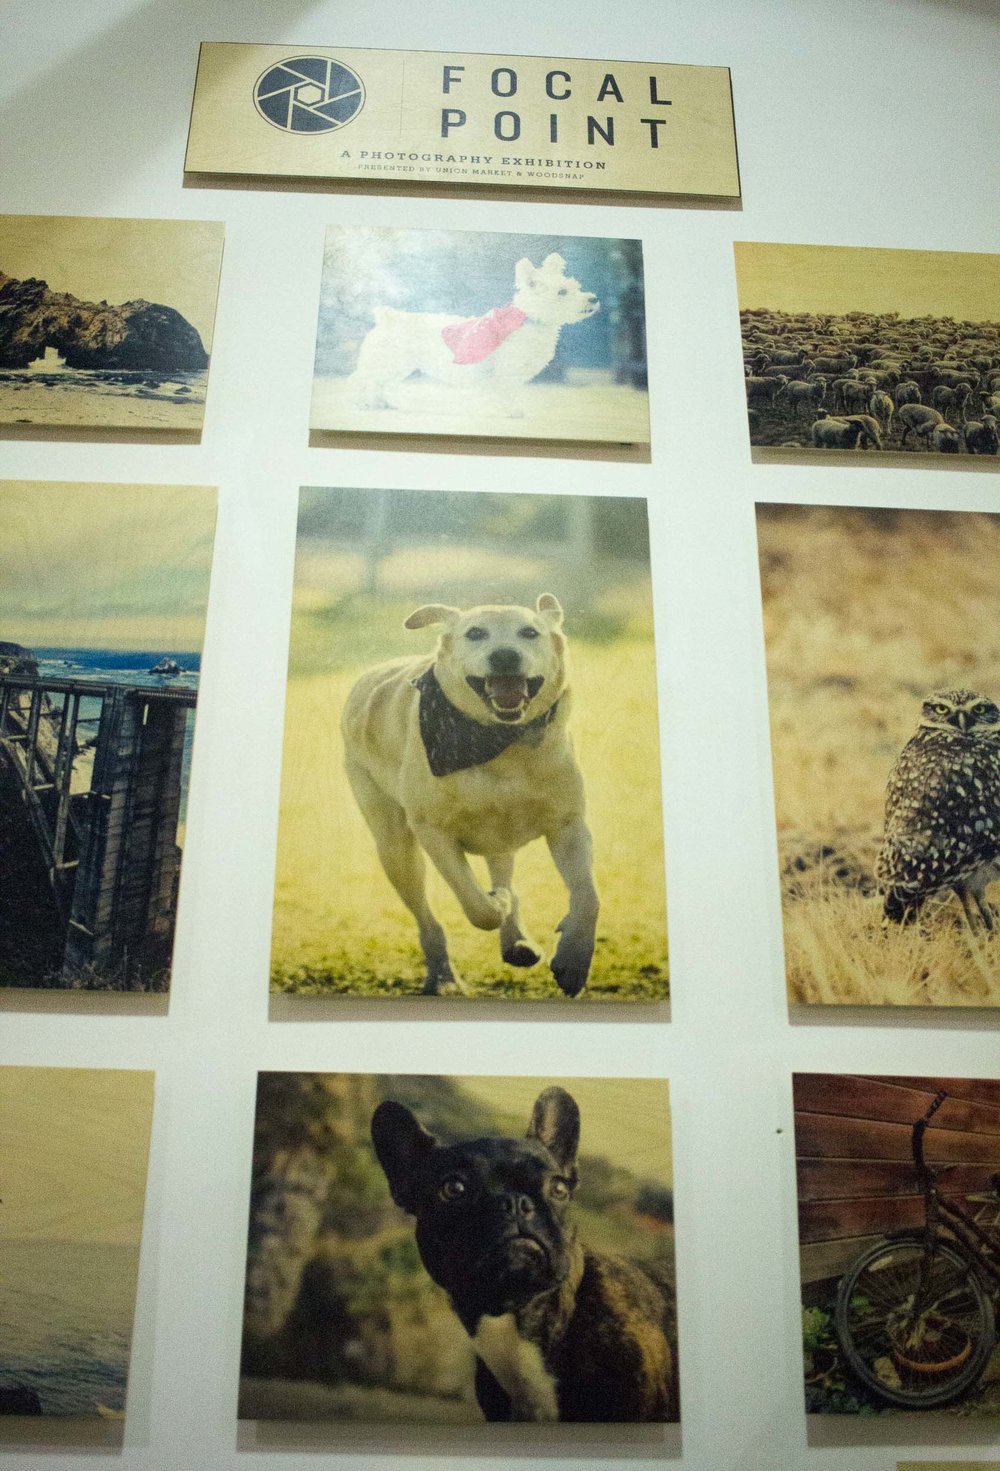 Steamer Lee Dog Photography - Focal Point Mission Viejo WoodSnap Exhibit - 4.jpg